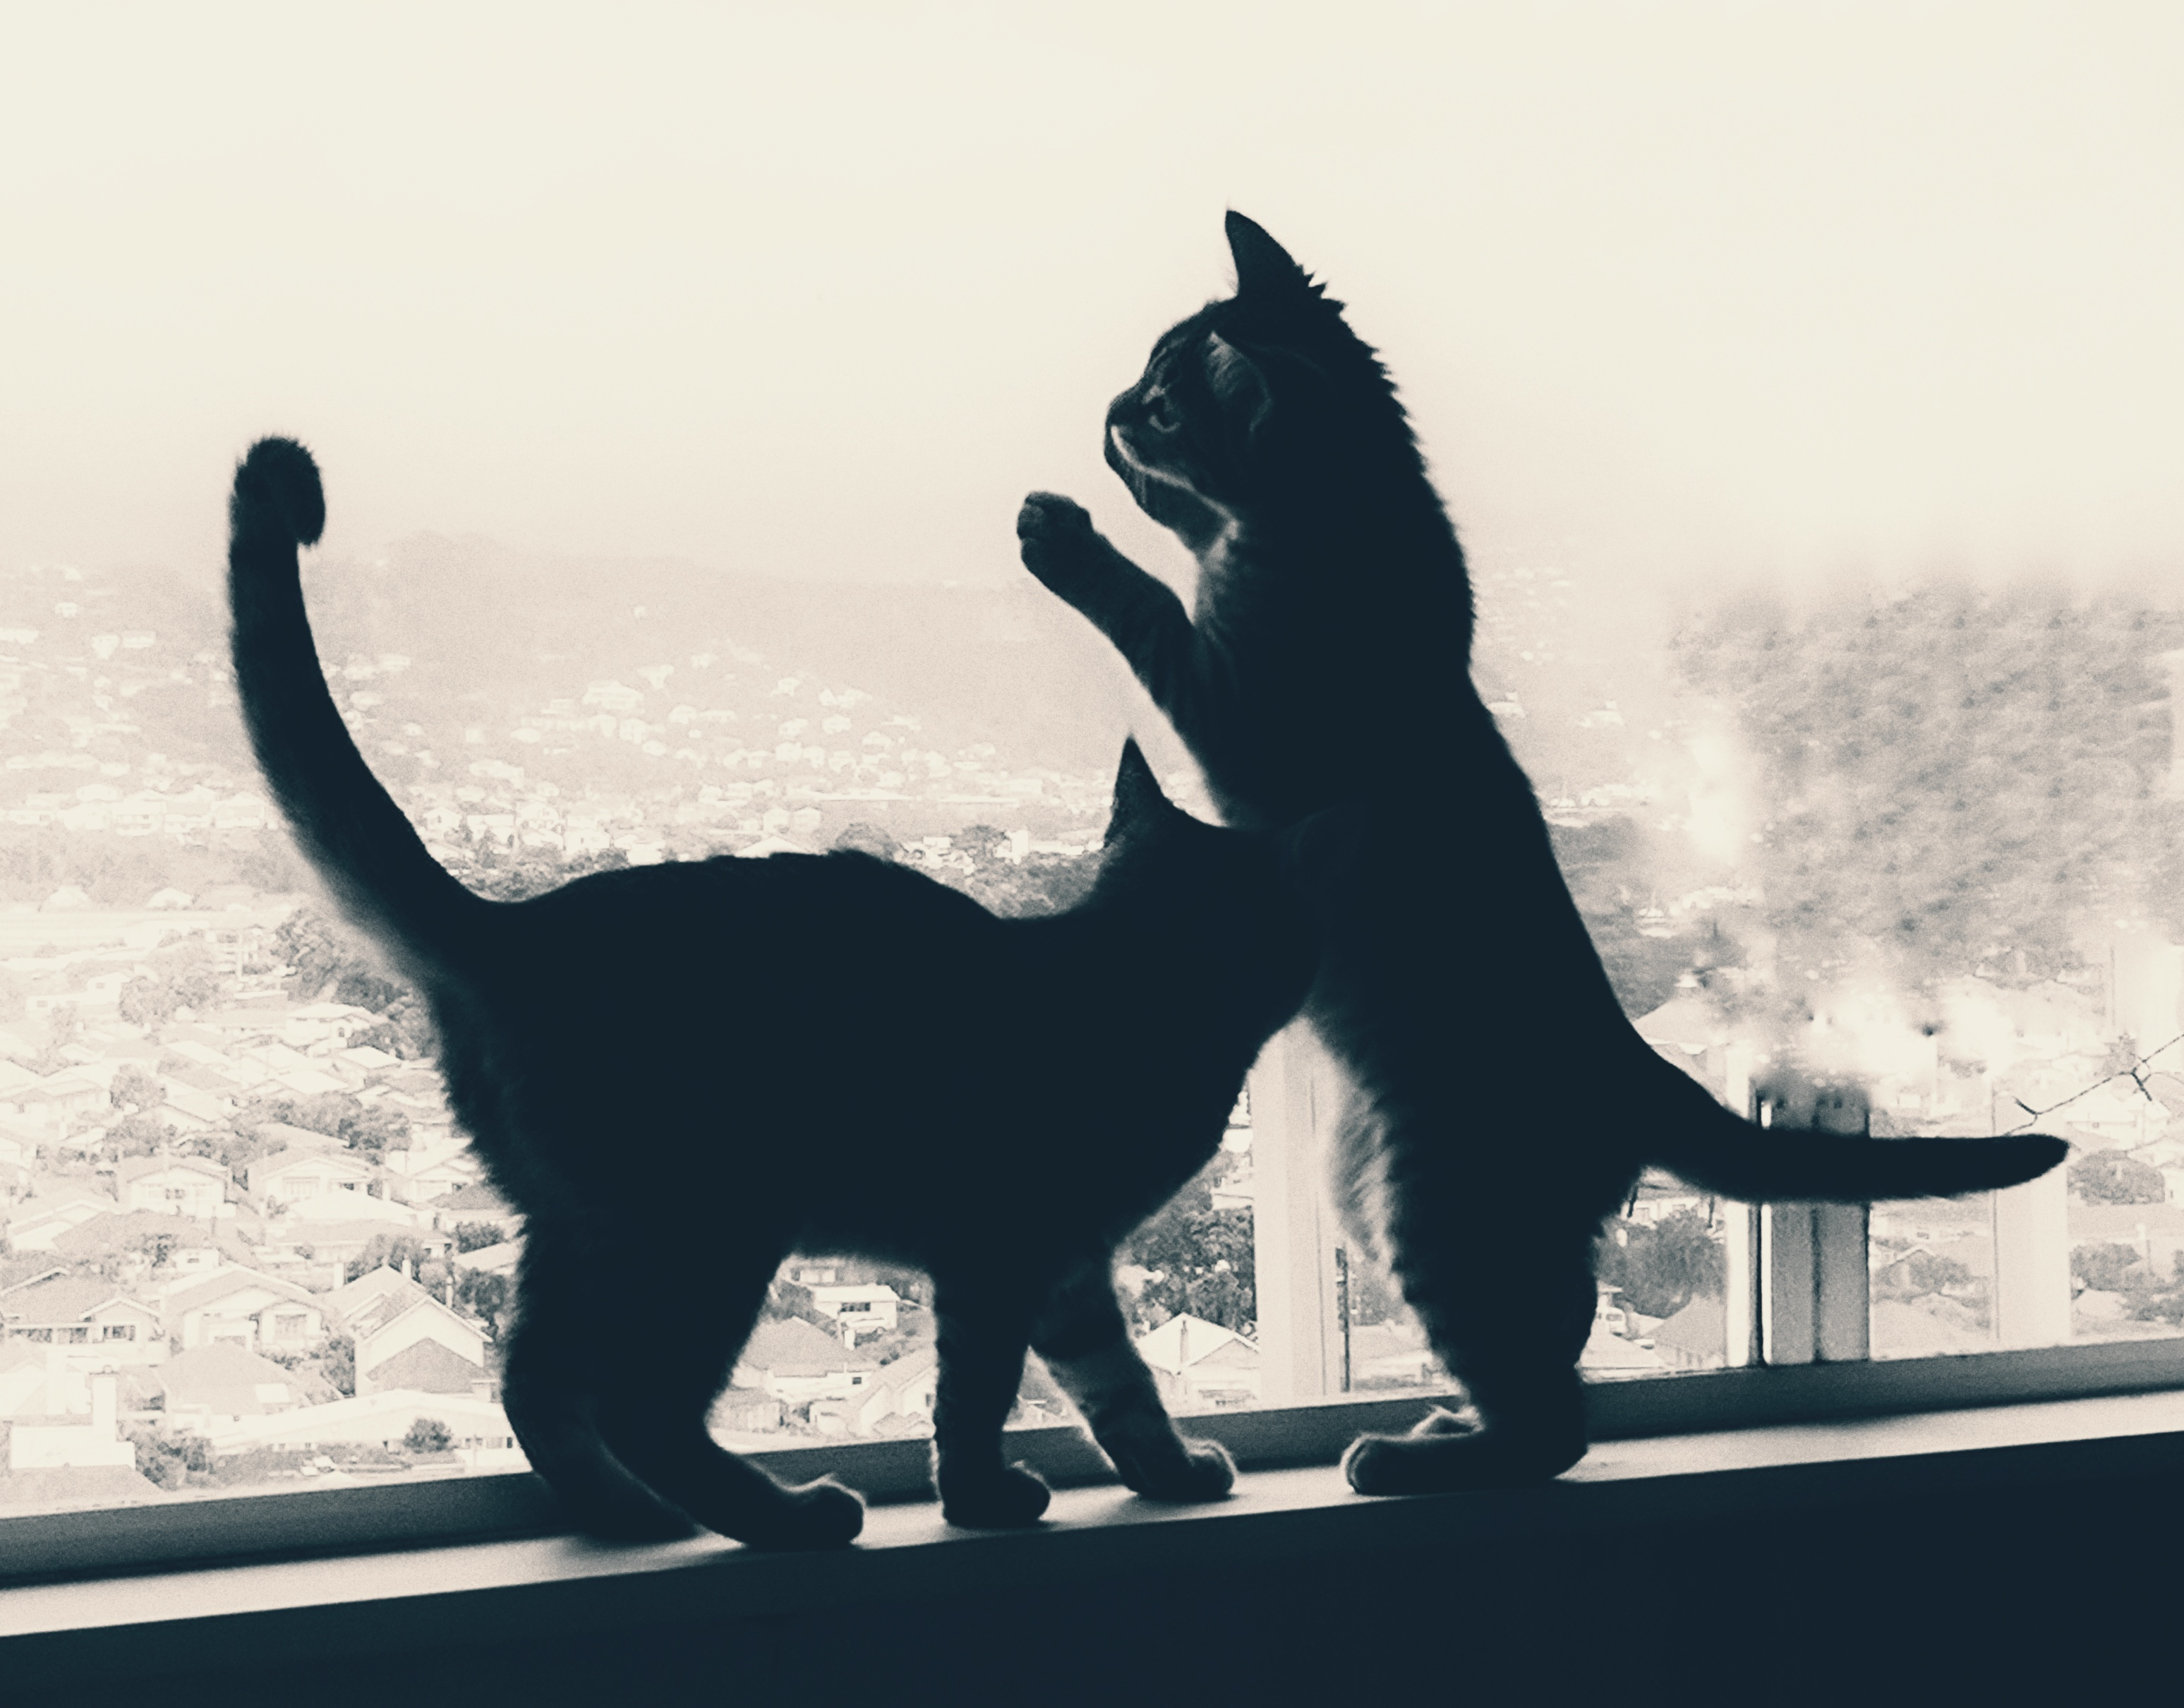 Kittens playing in silhouette on a window sill